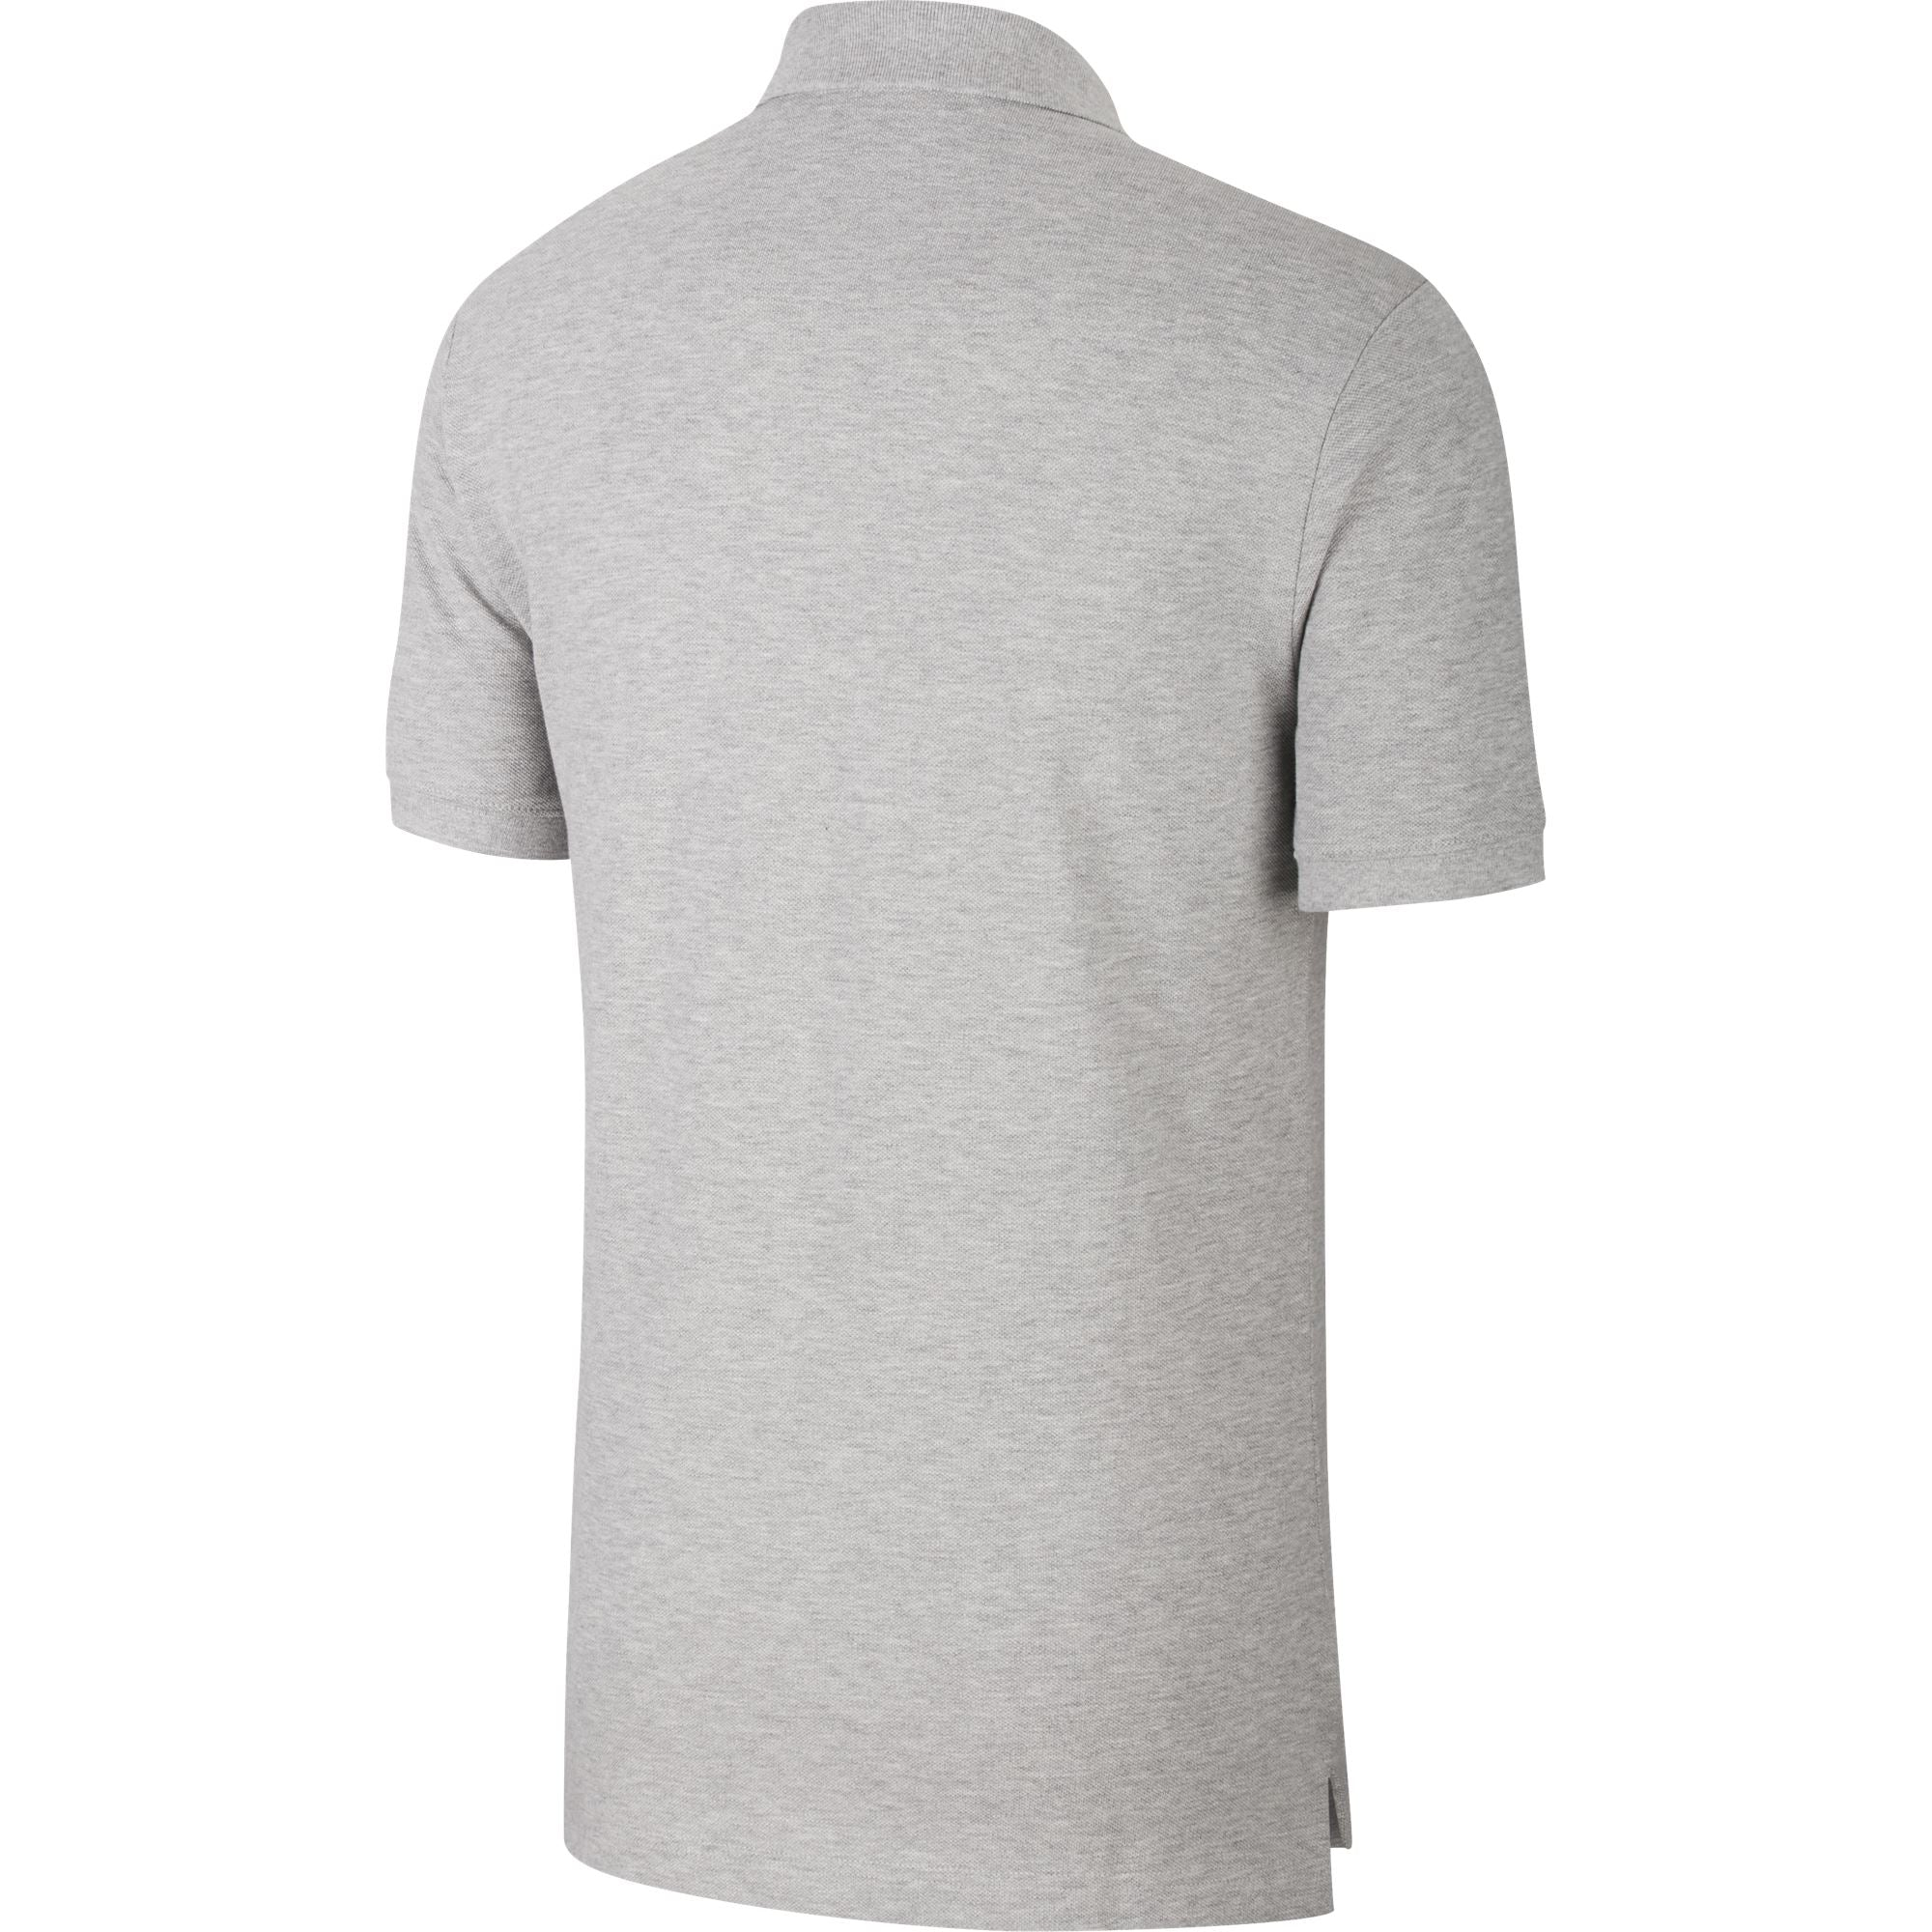 Nike Men's Sportswear Polo Shirt Match-Up - Dark Grey Heather/White SP-ApparelShirts-Mens Nike